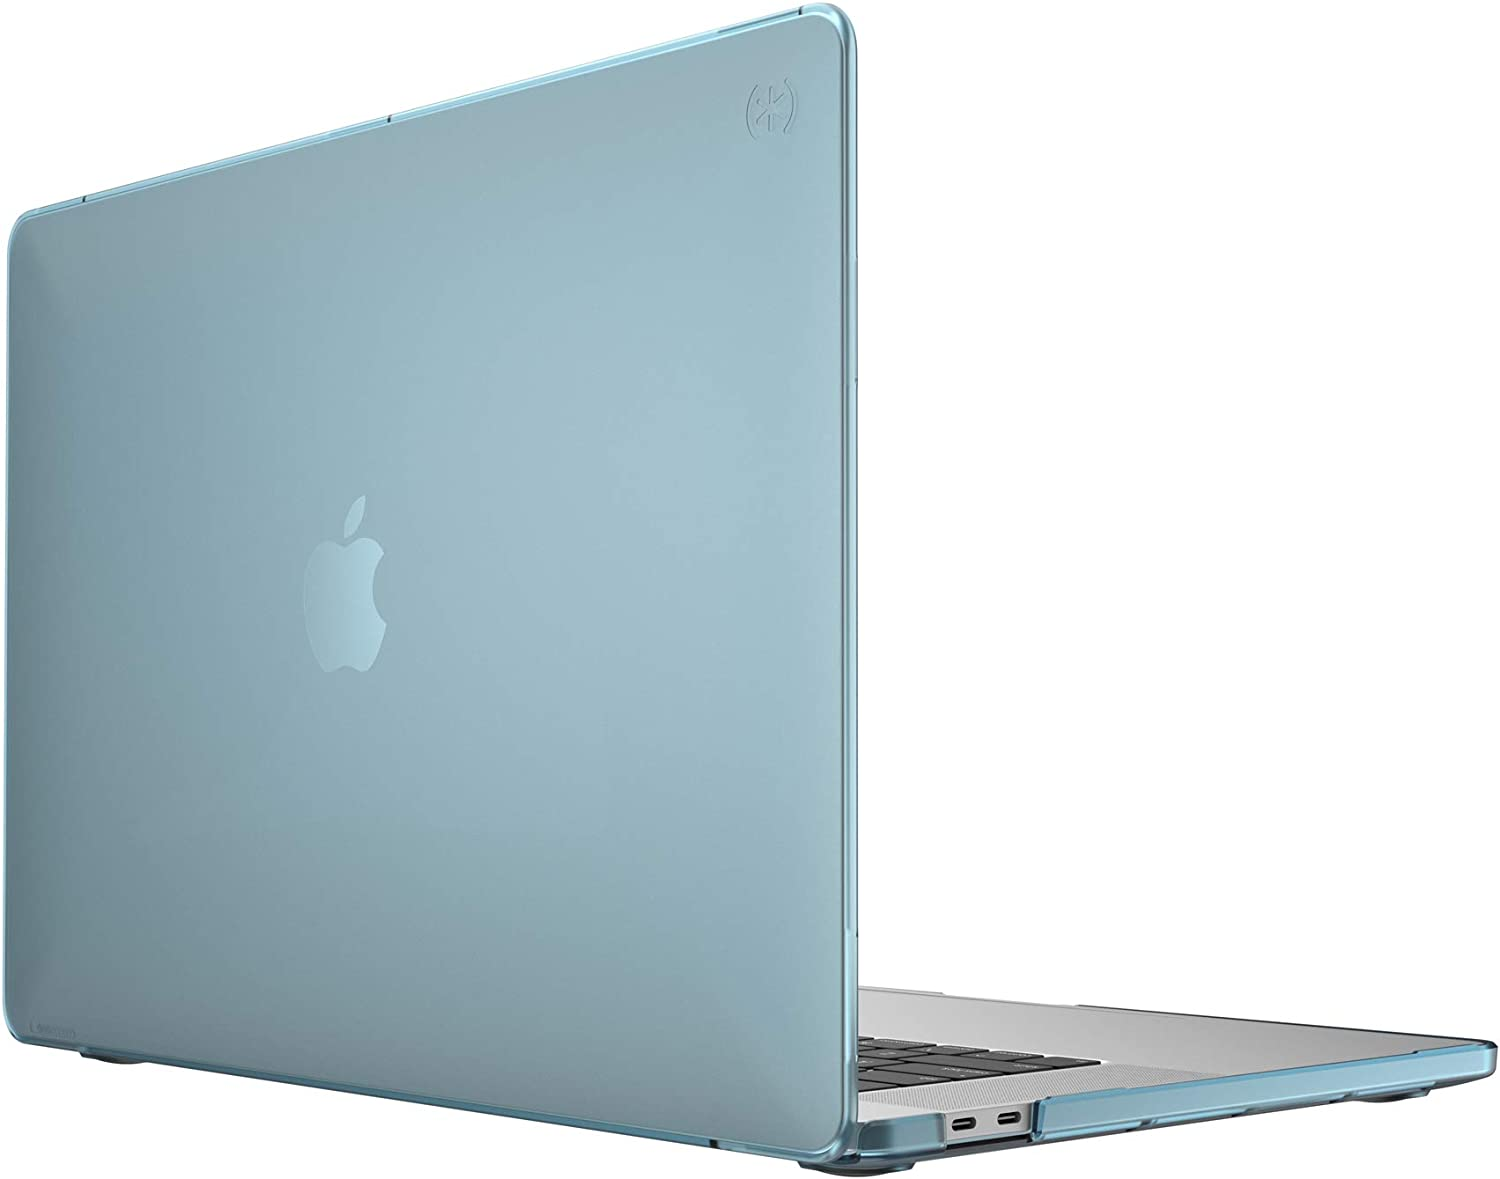 Speck Products Smartshell MacBook Pro 16 Inch Case, Swell Blue/Swell Blue